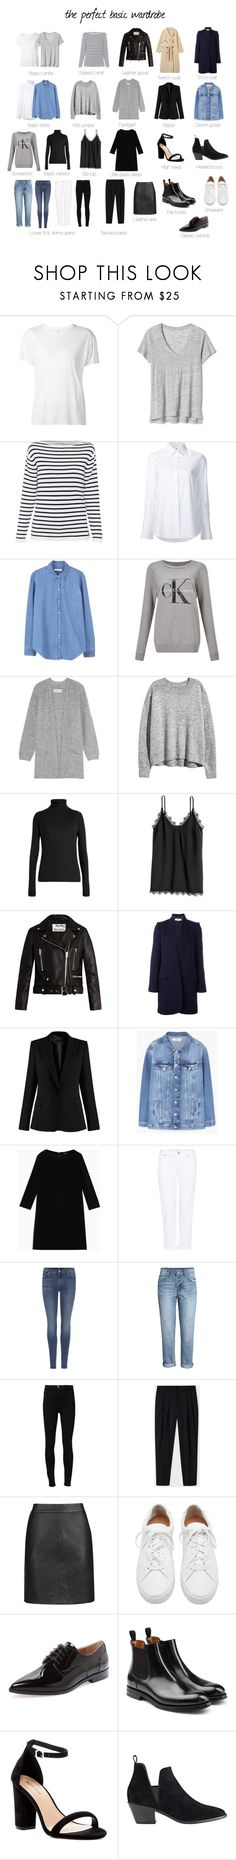 """The perfect basic wardrobe"" by uselessdk on Polyvore featuring R13, Misha Nonoo, MANGO, Calvin Klein, By Malene Birger, Raey, Acne Studios, STELLA McCARTNEY, Max&Co. and Citizens of Humanity"